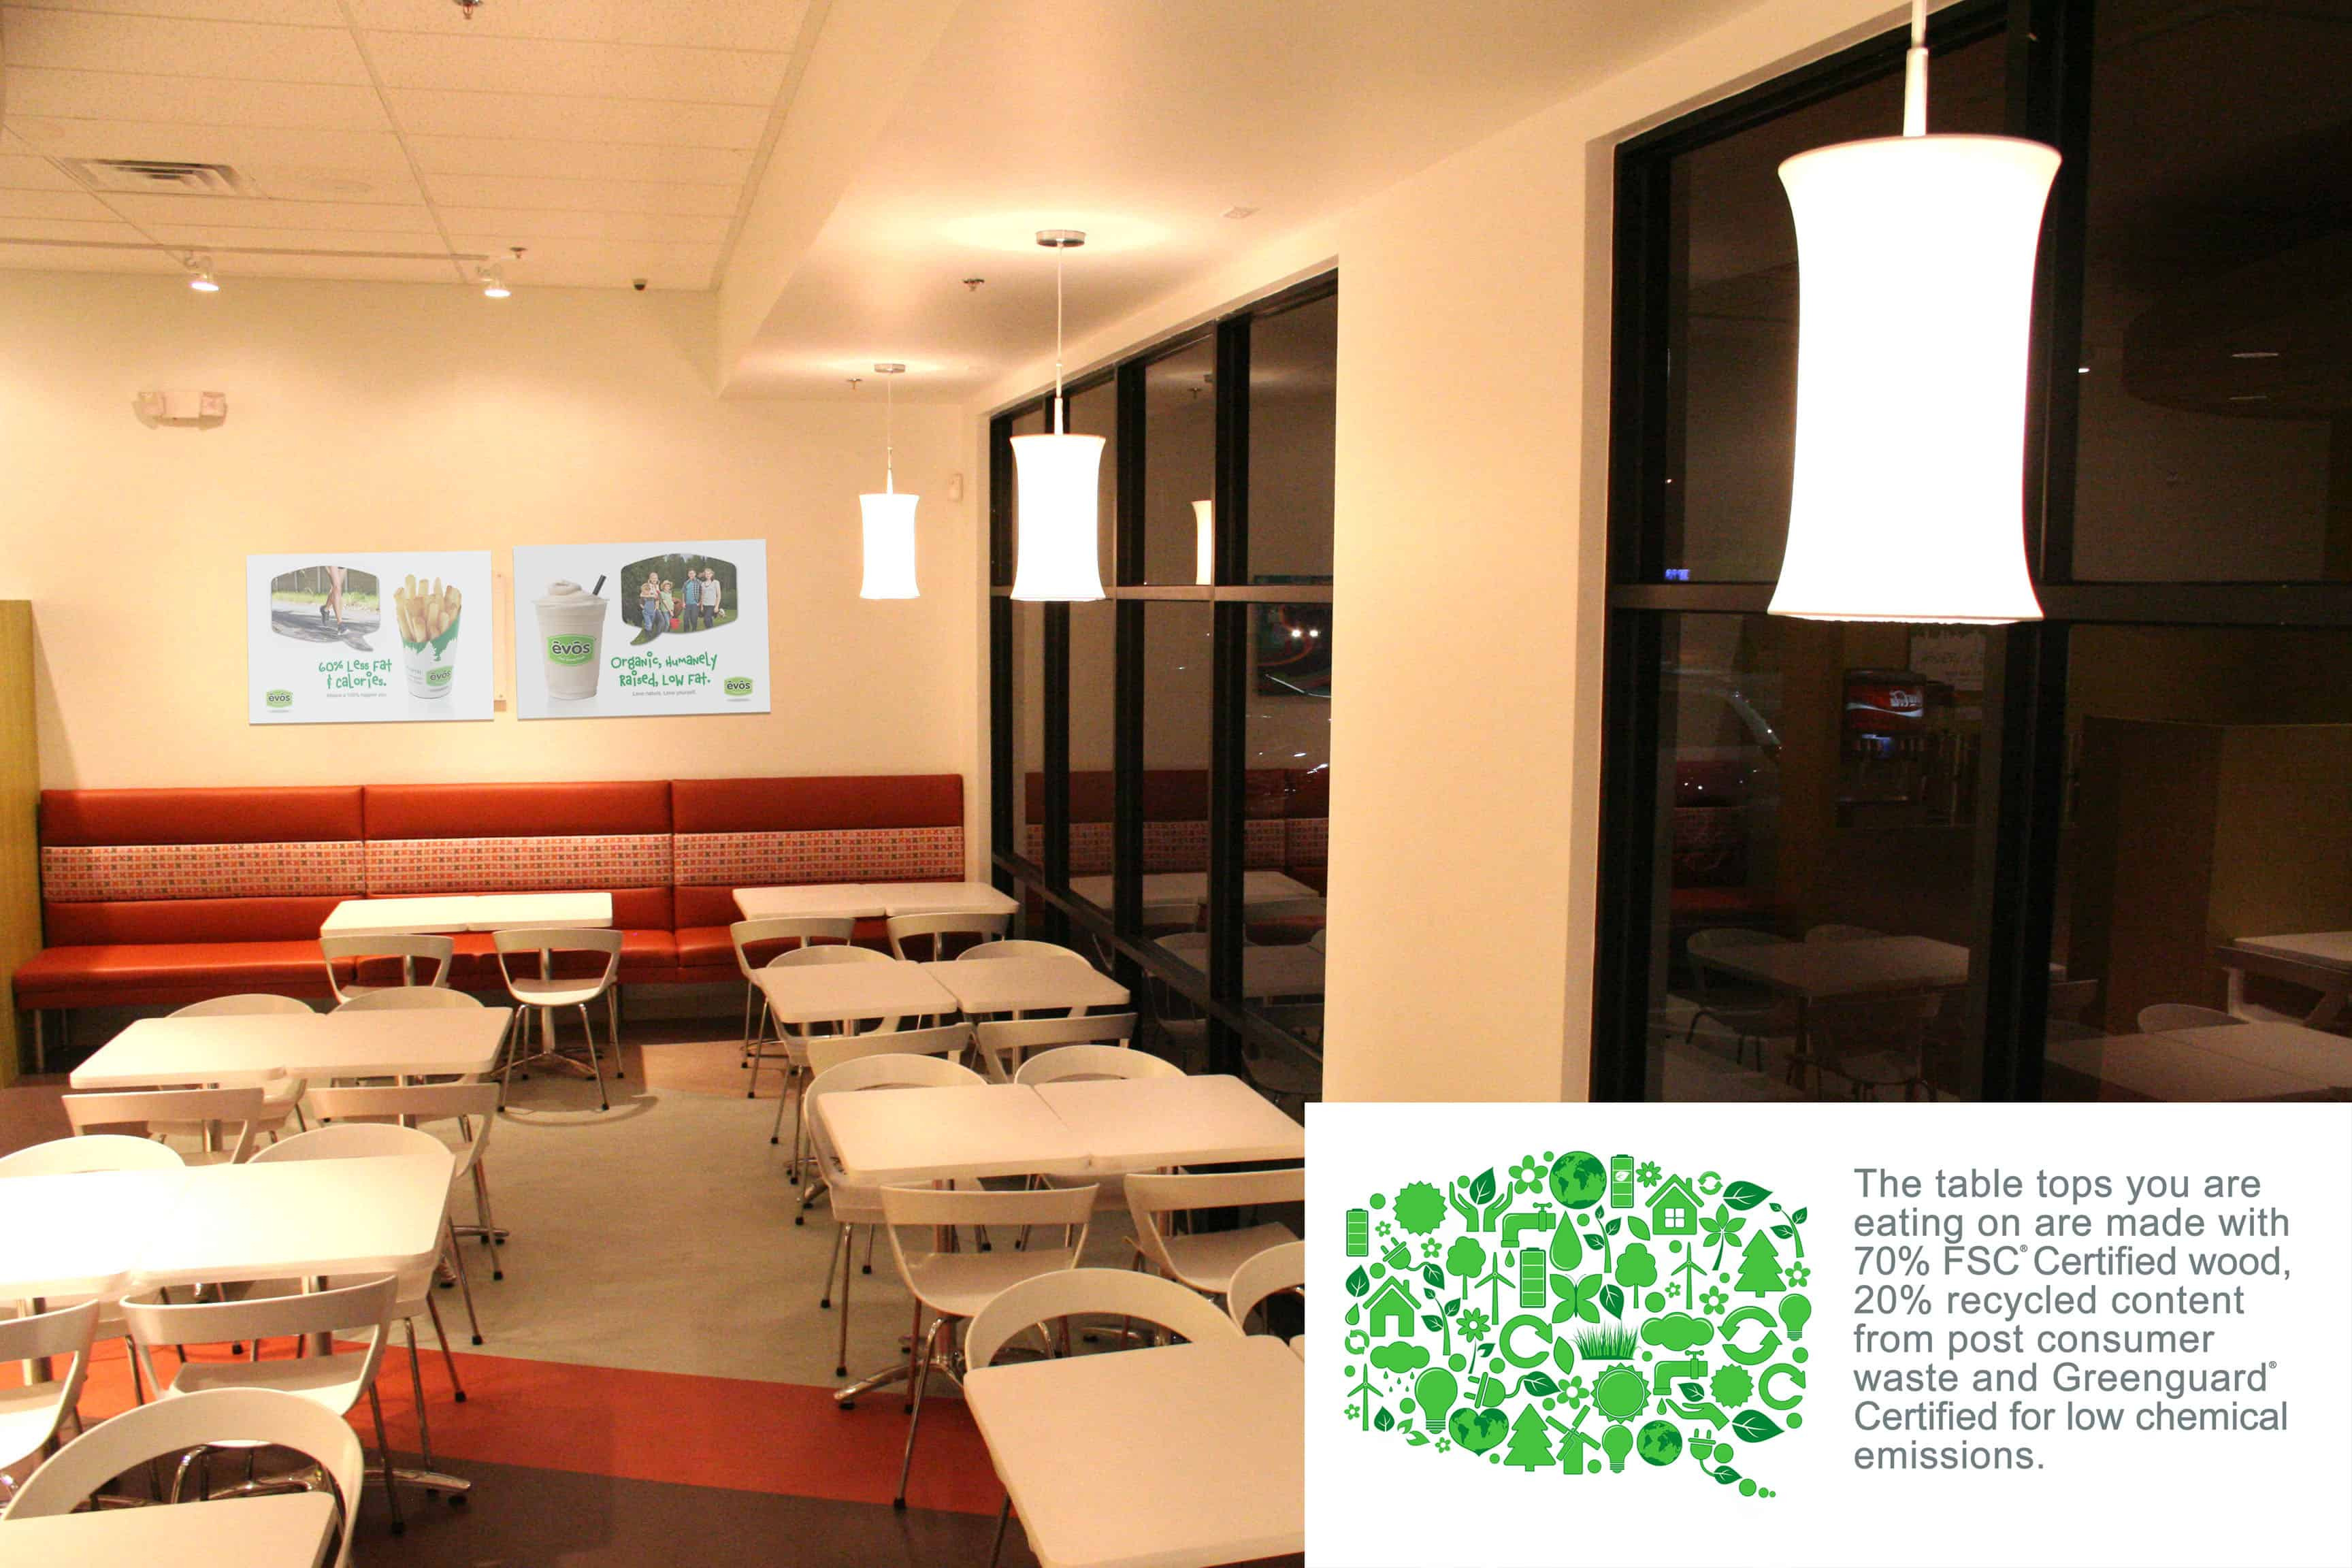 EVOS Sustainable Tabletops